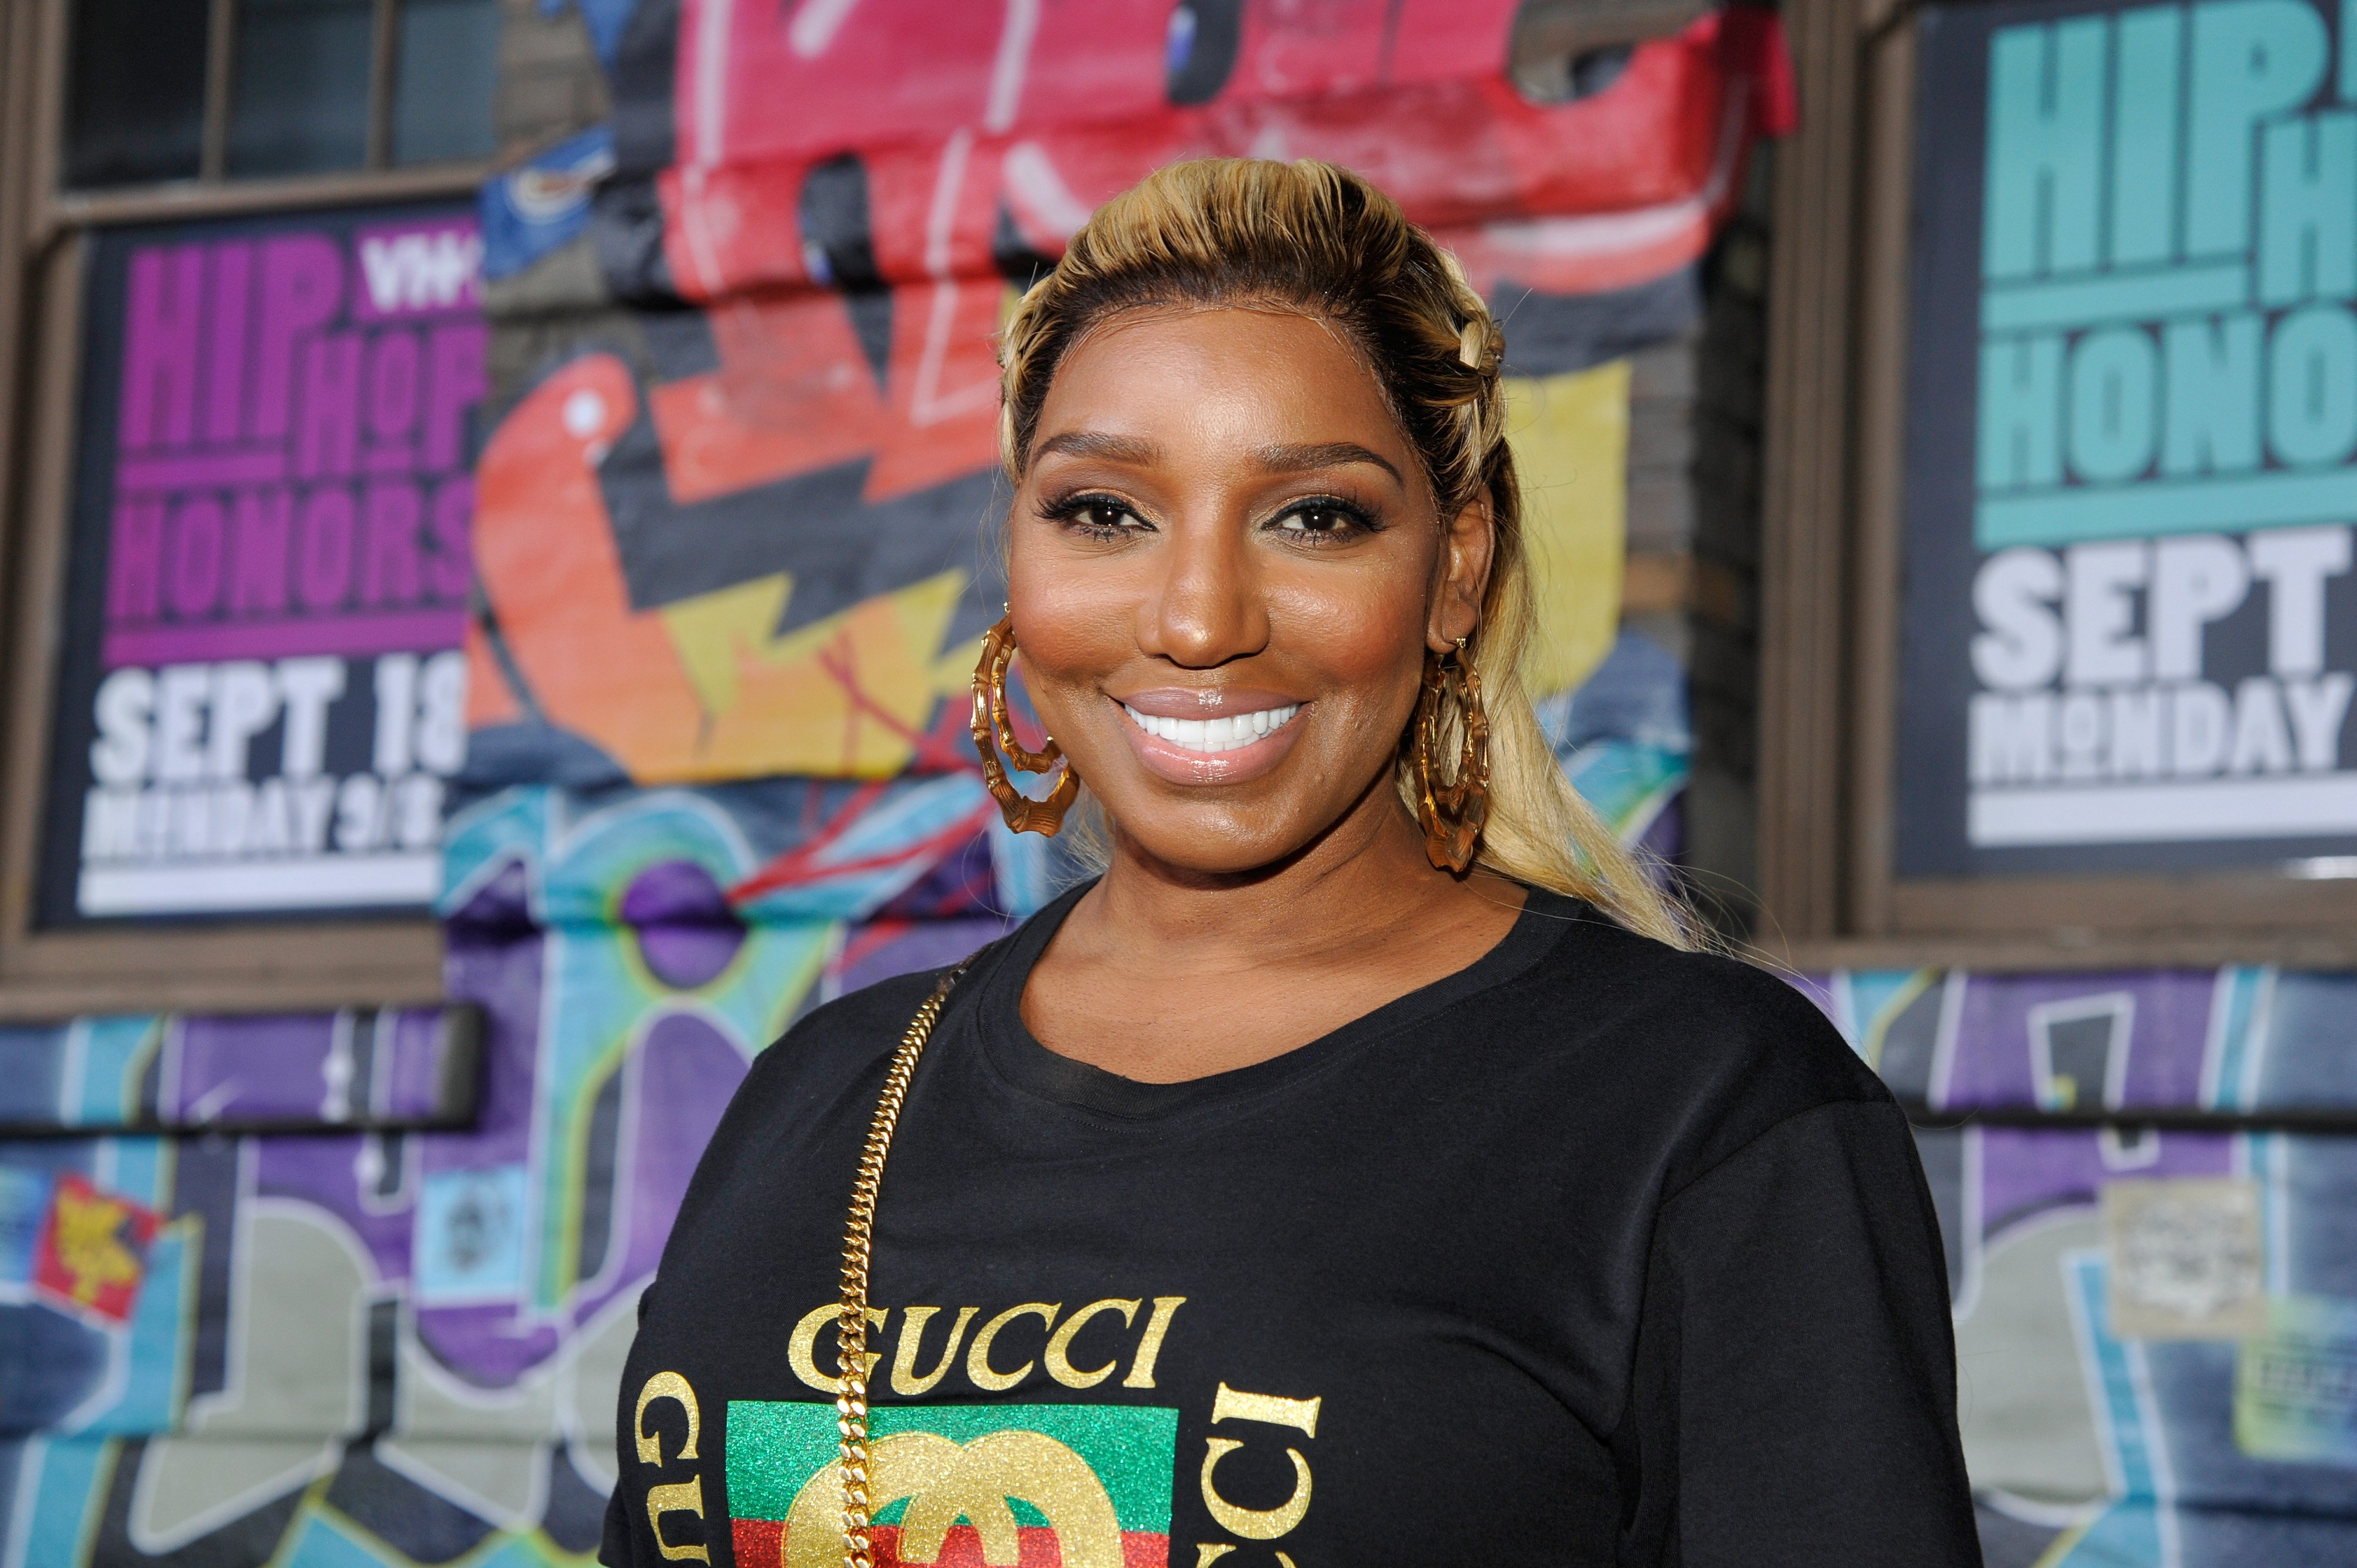 NeNe Leakes at the VH1 Hip Hop Honors: The 90s Game Changers on Sept. 17, 2017 in California | Photo: Getty Images |